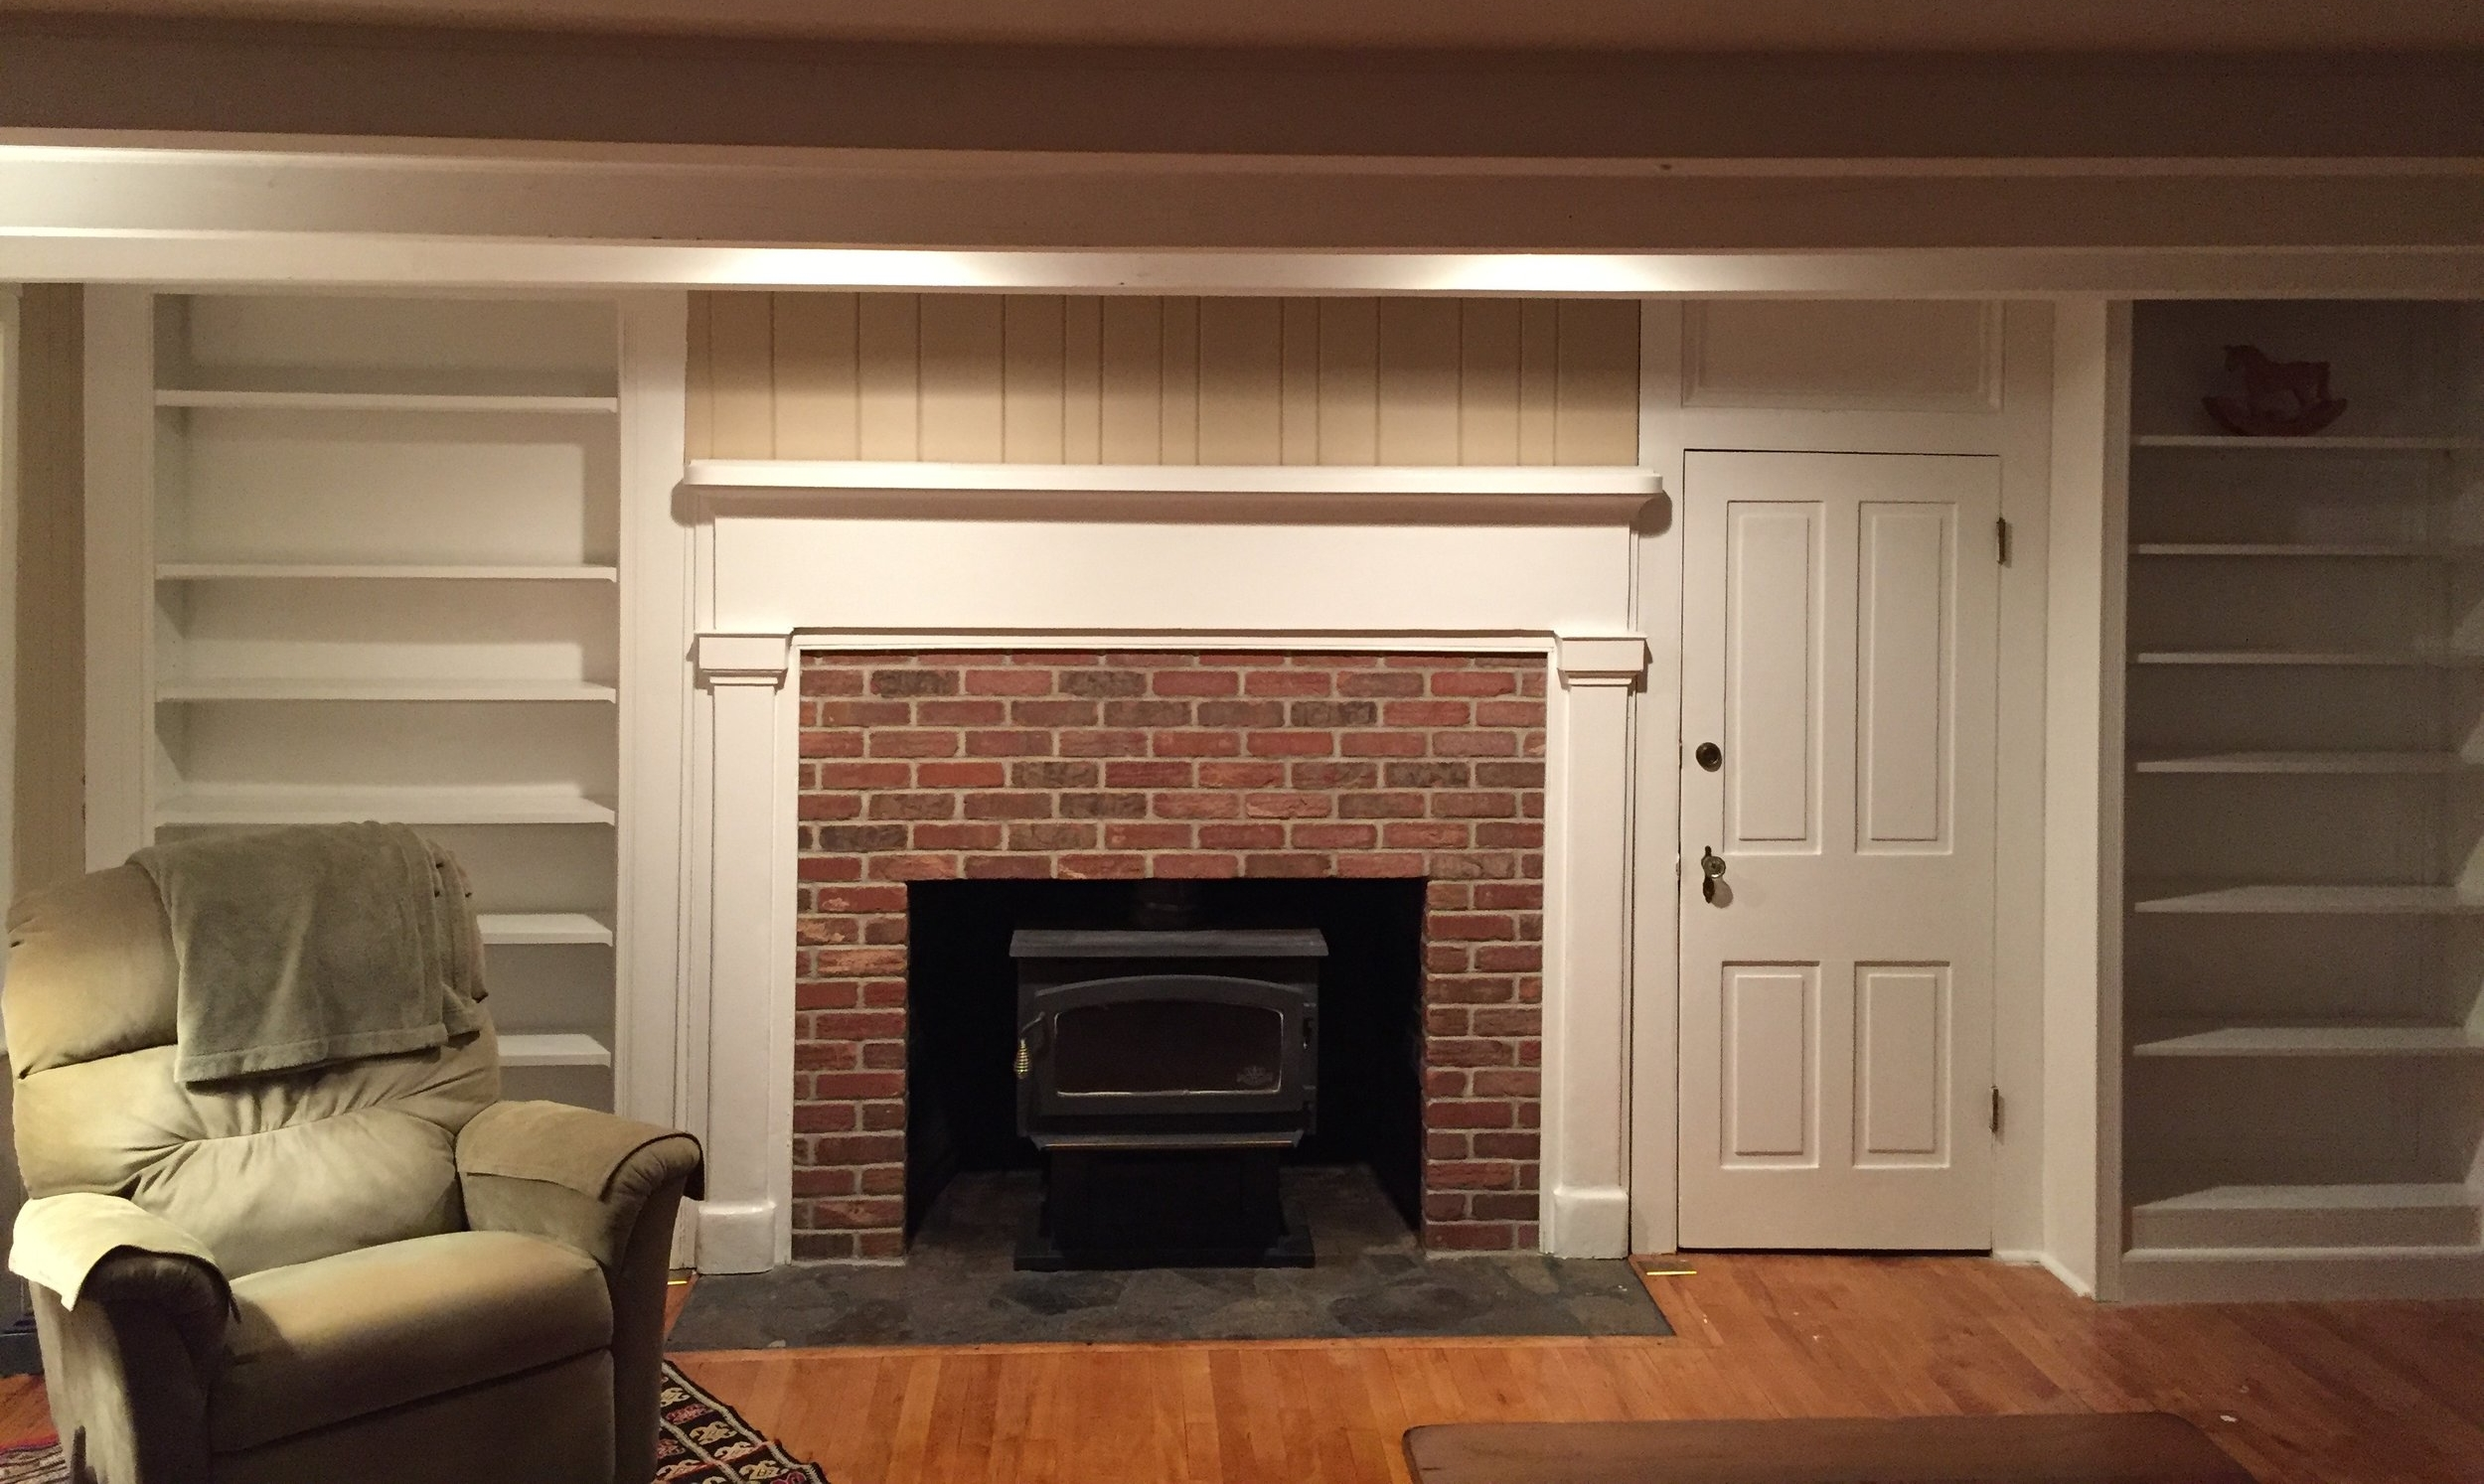 Copy of Brick Veneer Fireplace in Clinton, NJ